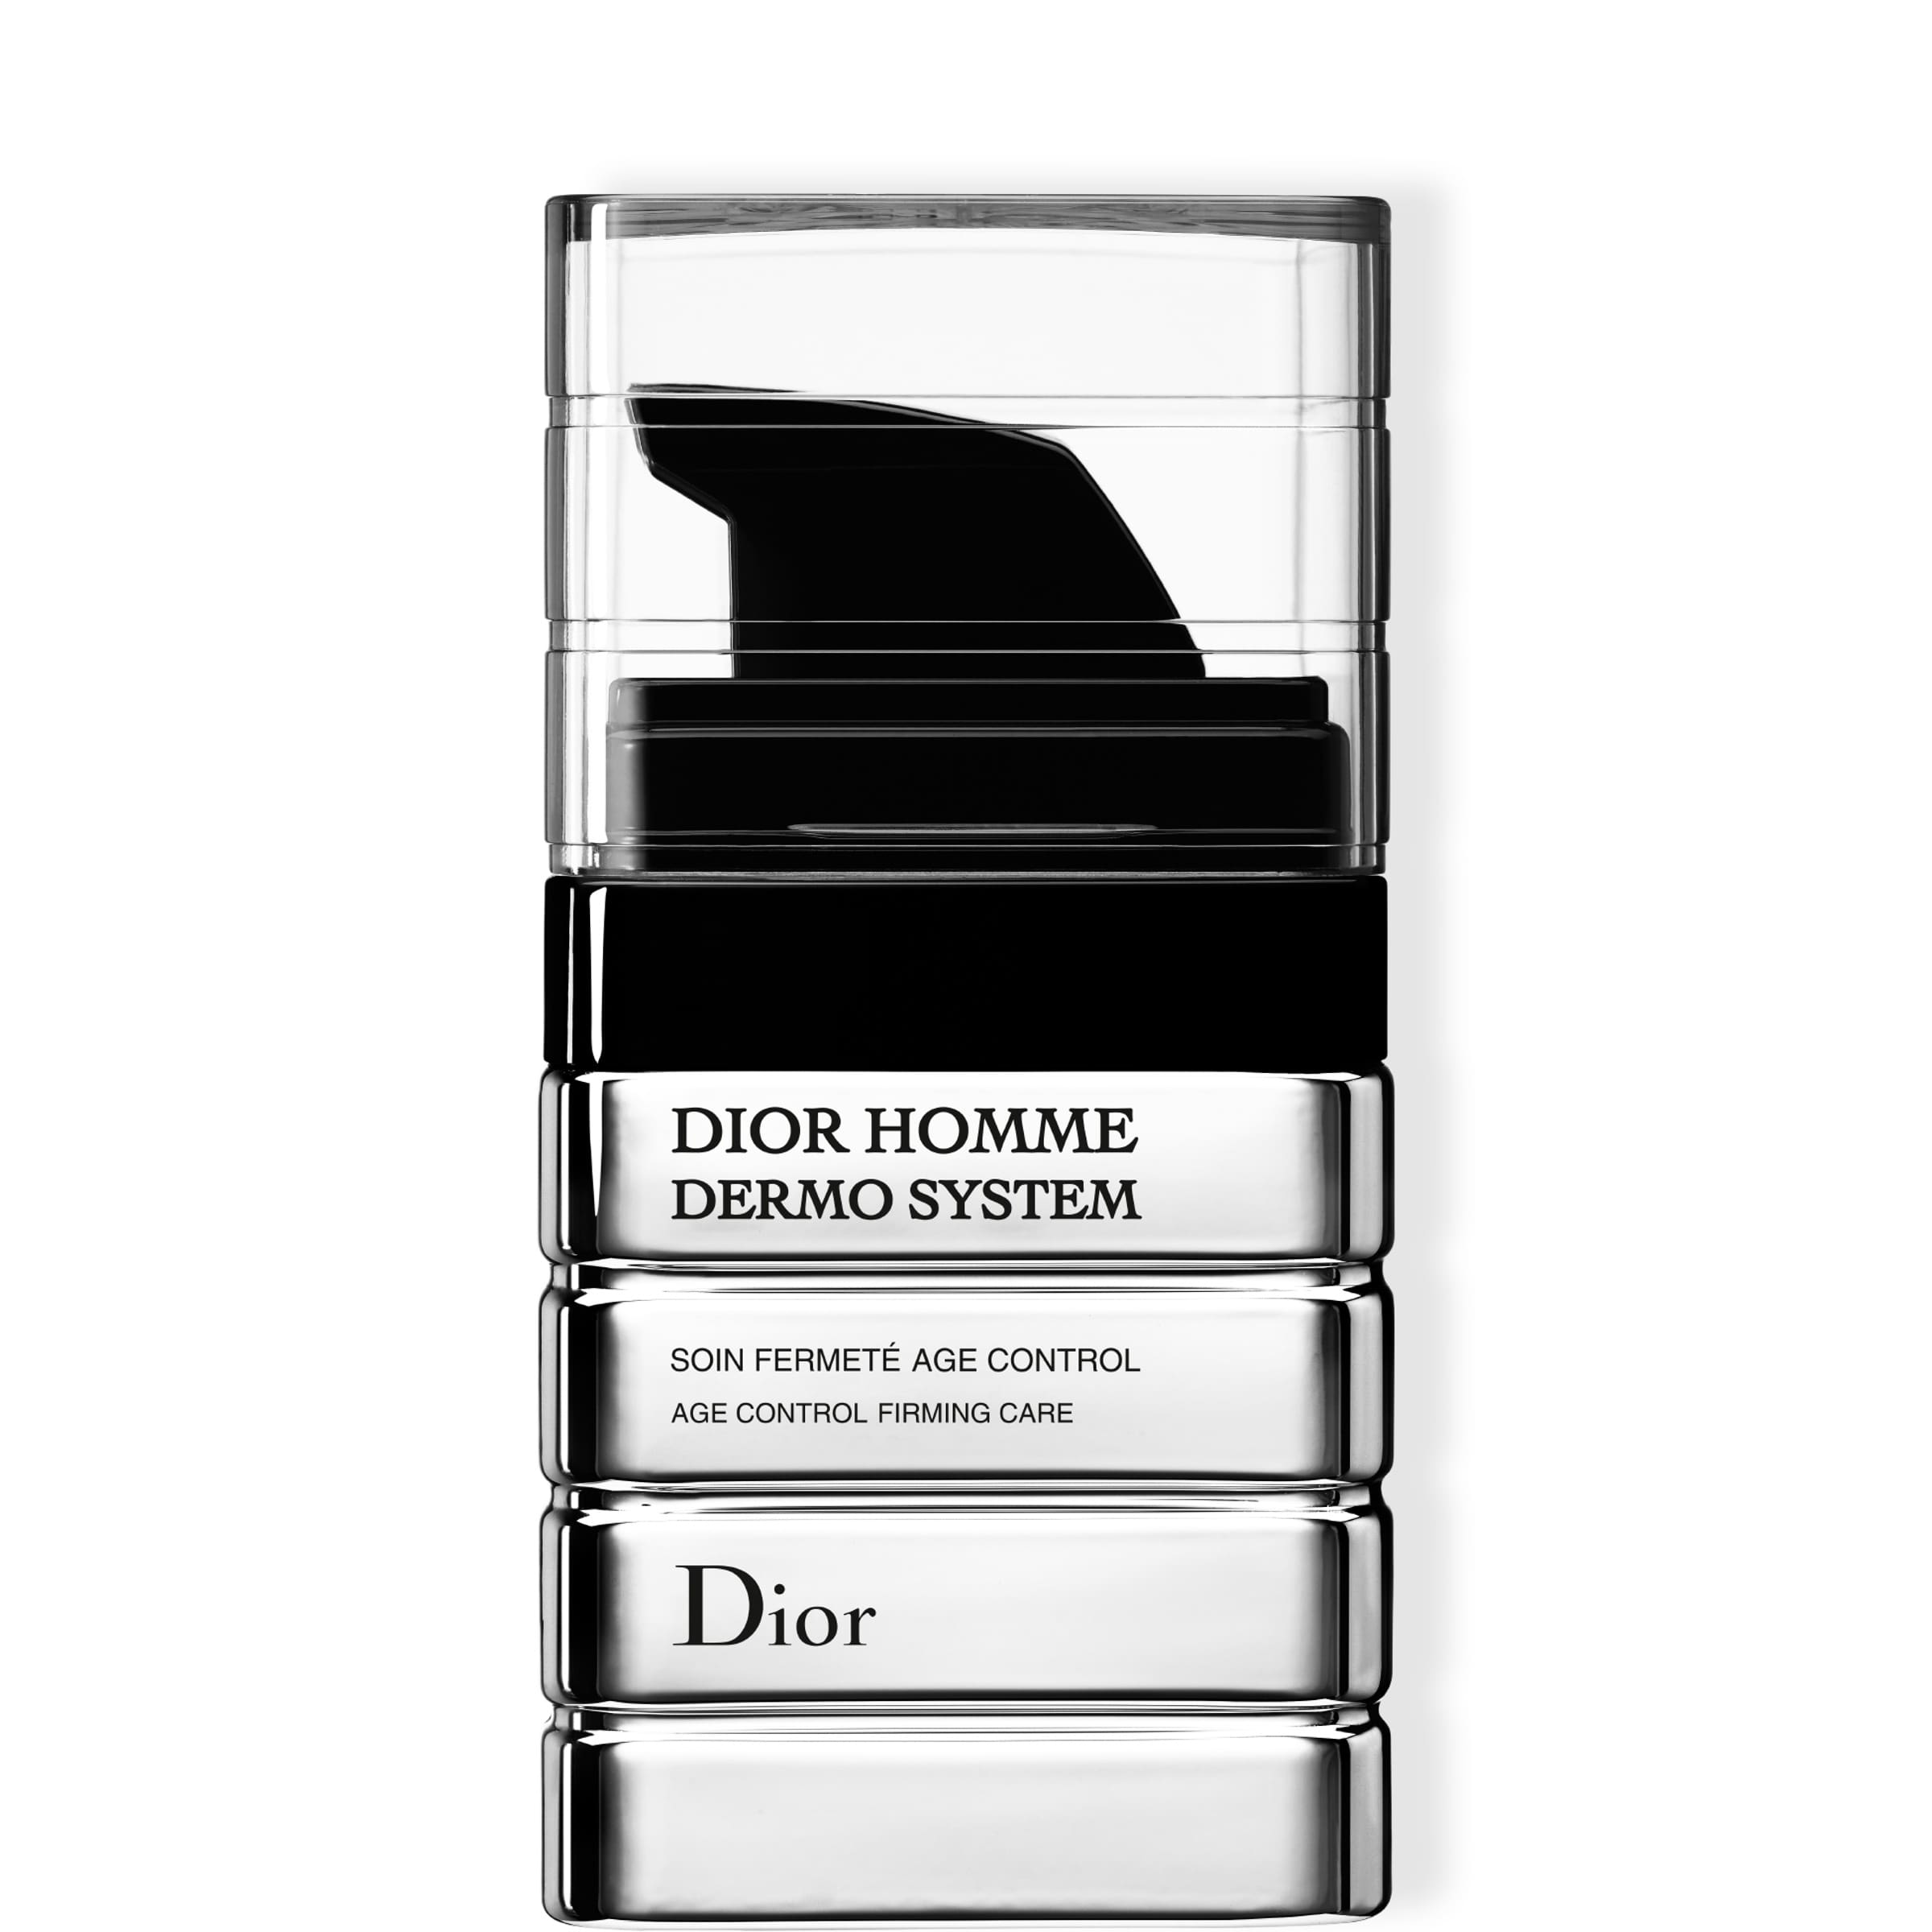 Dior Homme Dermo System Age Control Firming Care 50ml